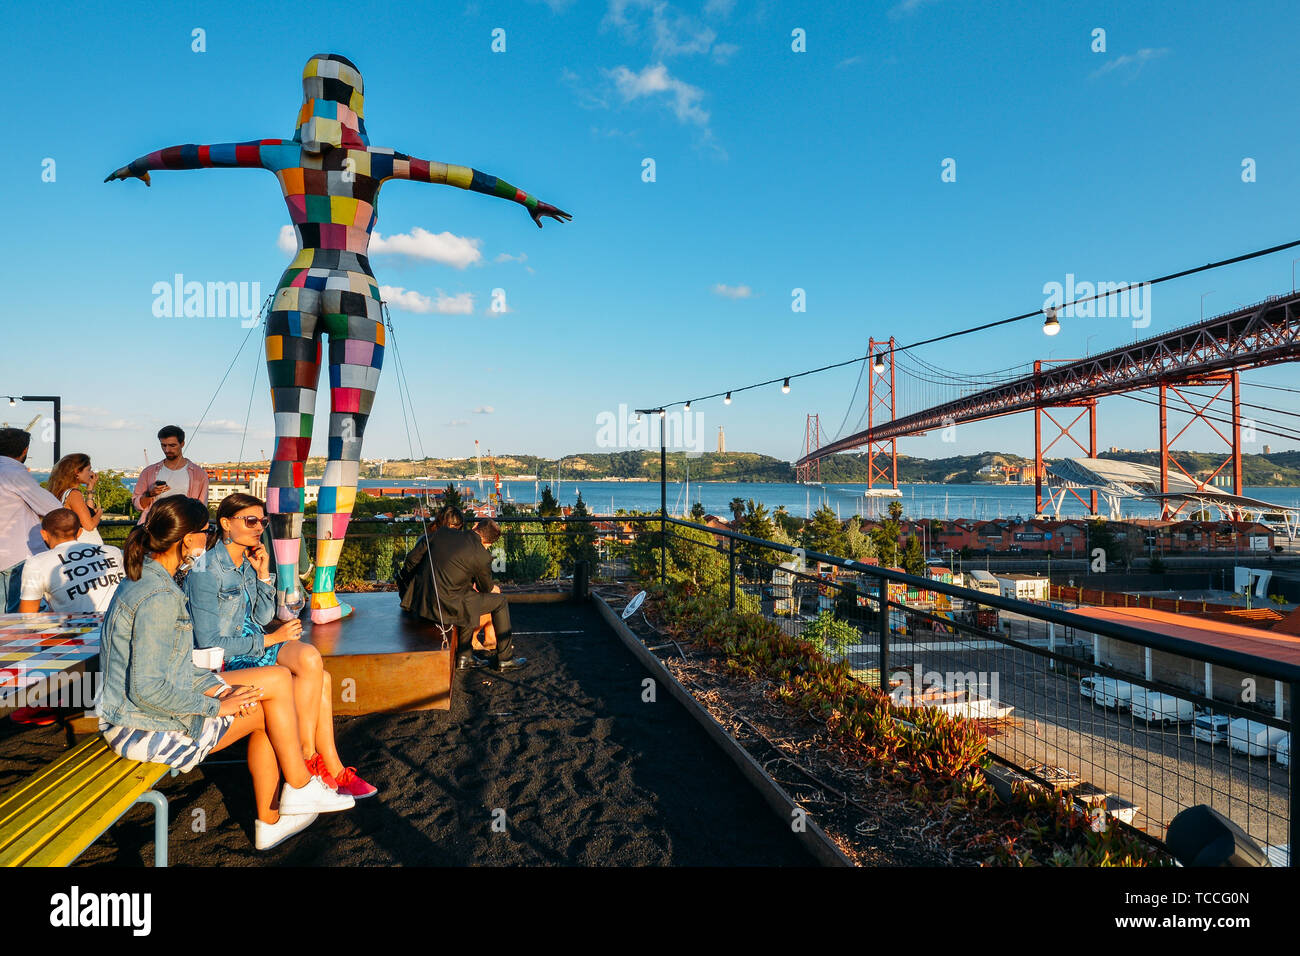 Lisbon, Portugal - June 5, 2019: View of 25th of April bridge with people sitting on the bar terrace at LX Factory in Alcantara - Stock Image